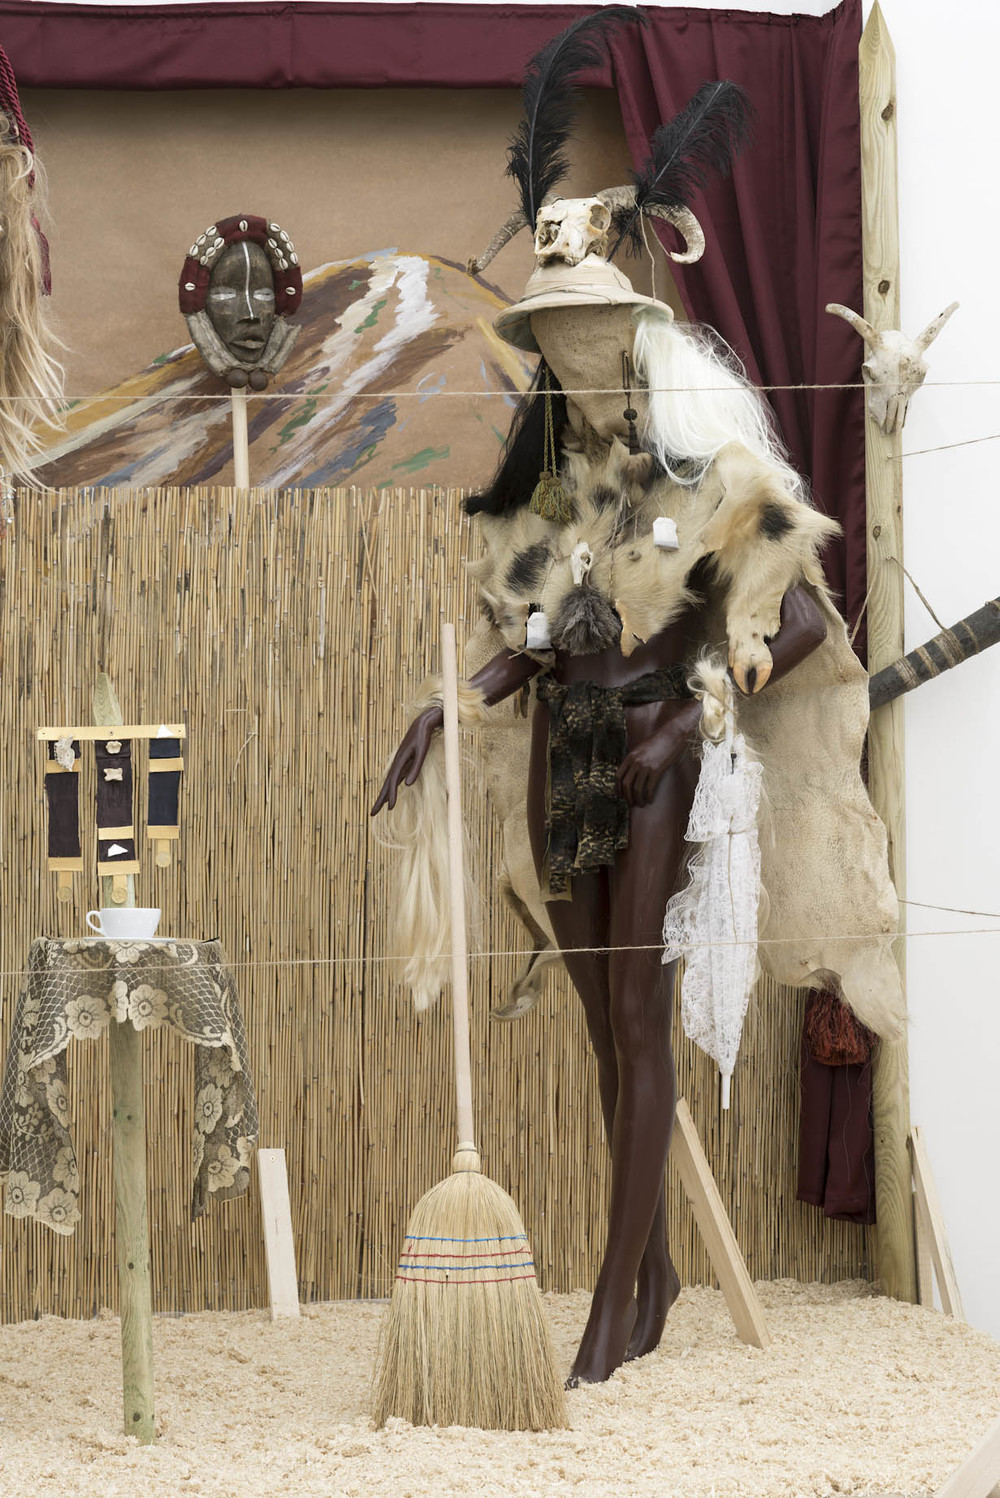 Andrew Gilbert, 'Shaka Zulu - the Musical' (detail), 2016, mixed media, dimensions variable, Photo by Leonie Felle